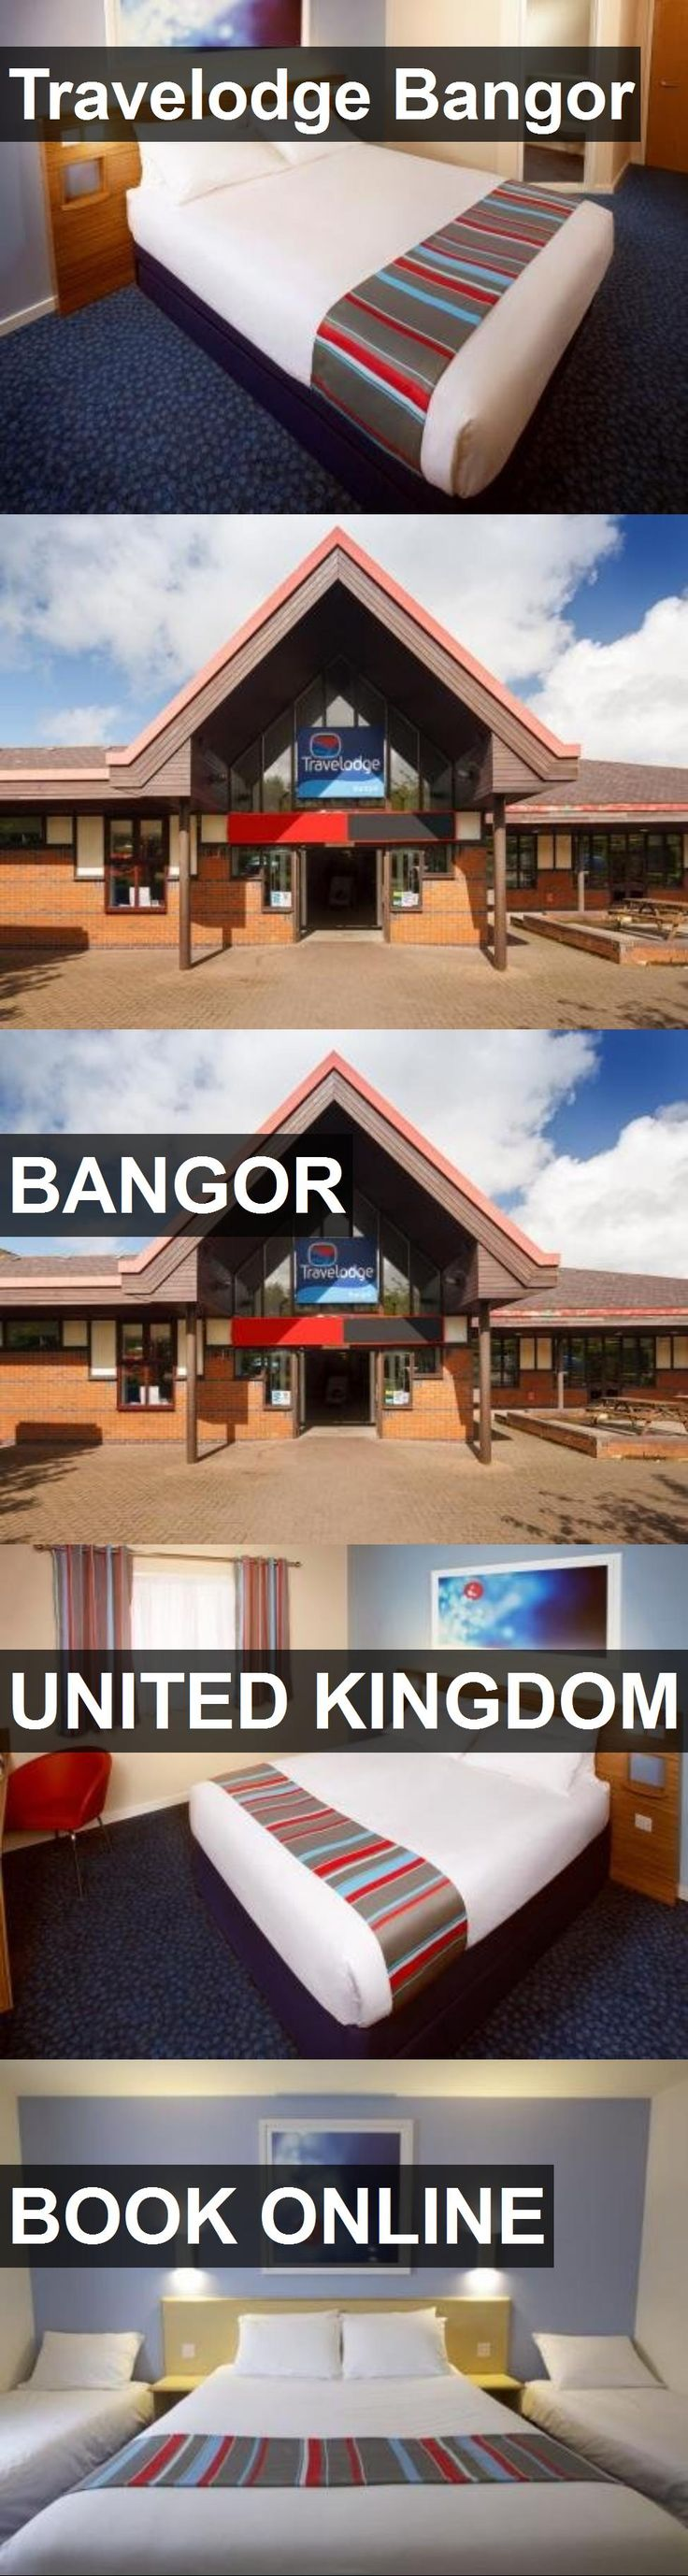 Hotel Travelodge Bangor in Bangor, United Kingdom. For more information, photos, reviews and best prices please follow the link. #UnitedKingdom #Bangor #TravelodgeBangor #hotel #travel #vacation